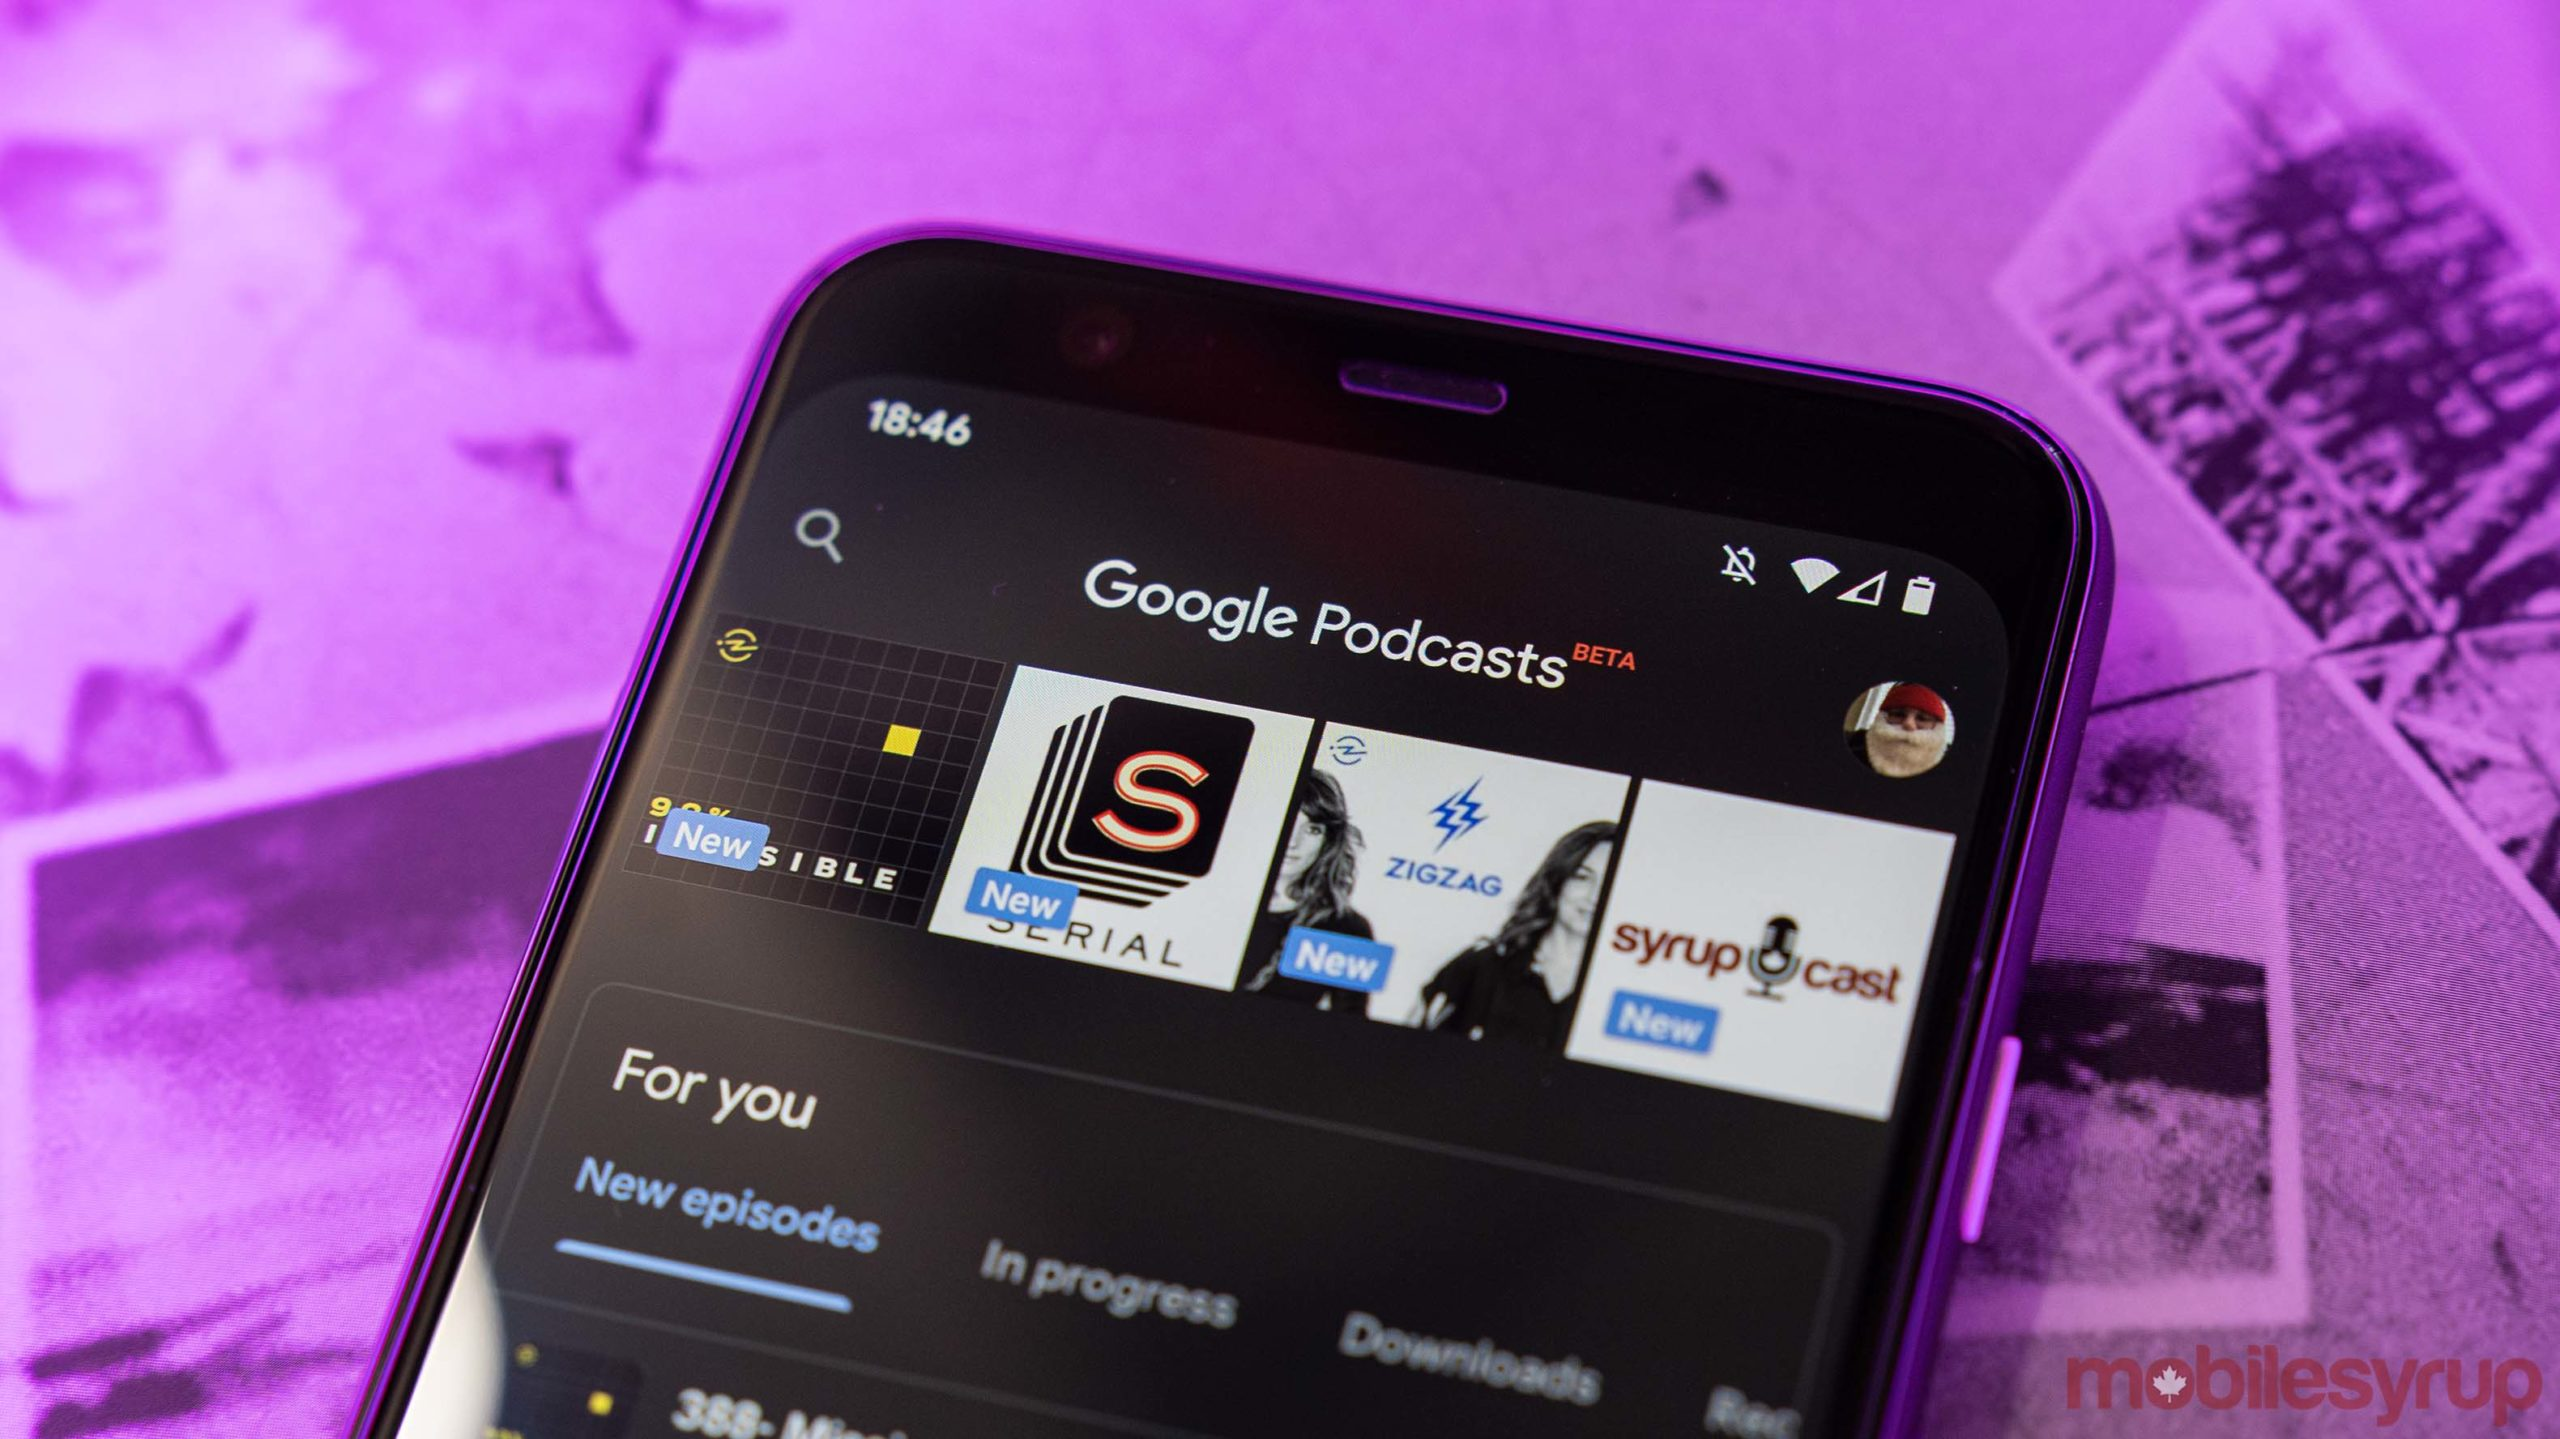 Google Podcasts dark mode